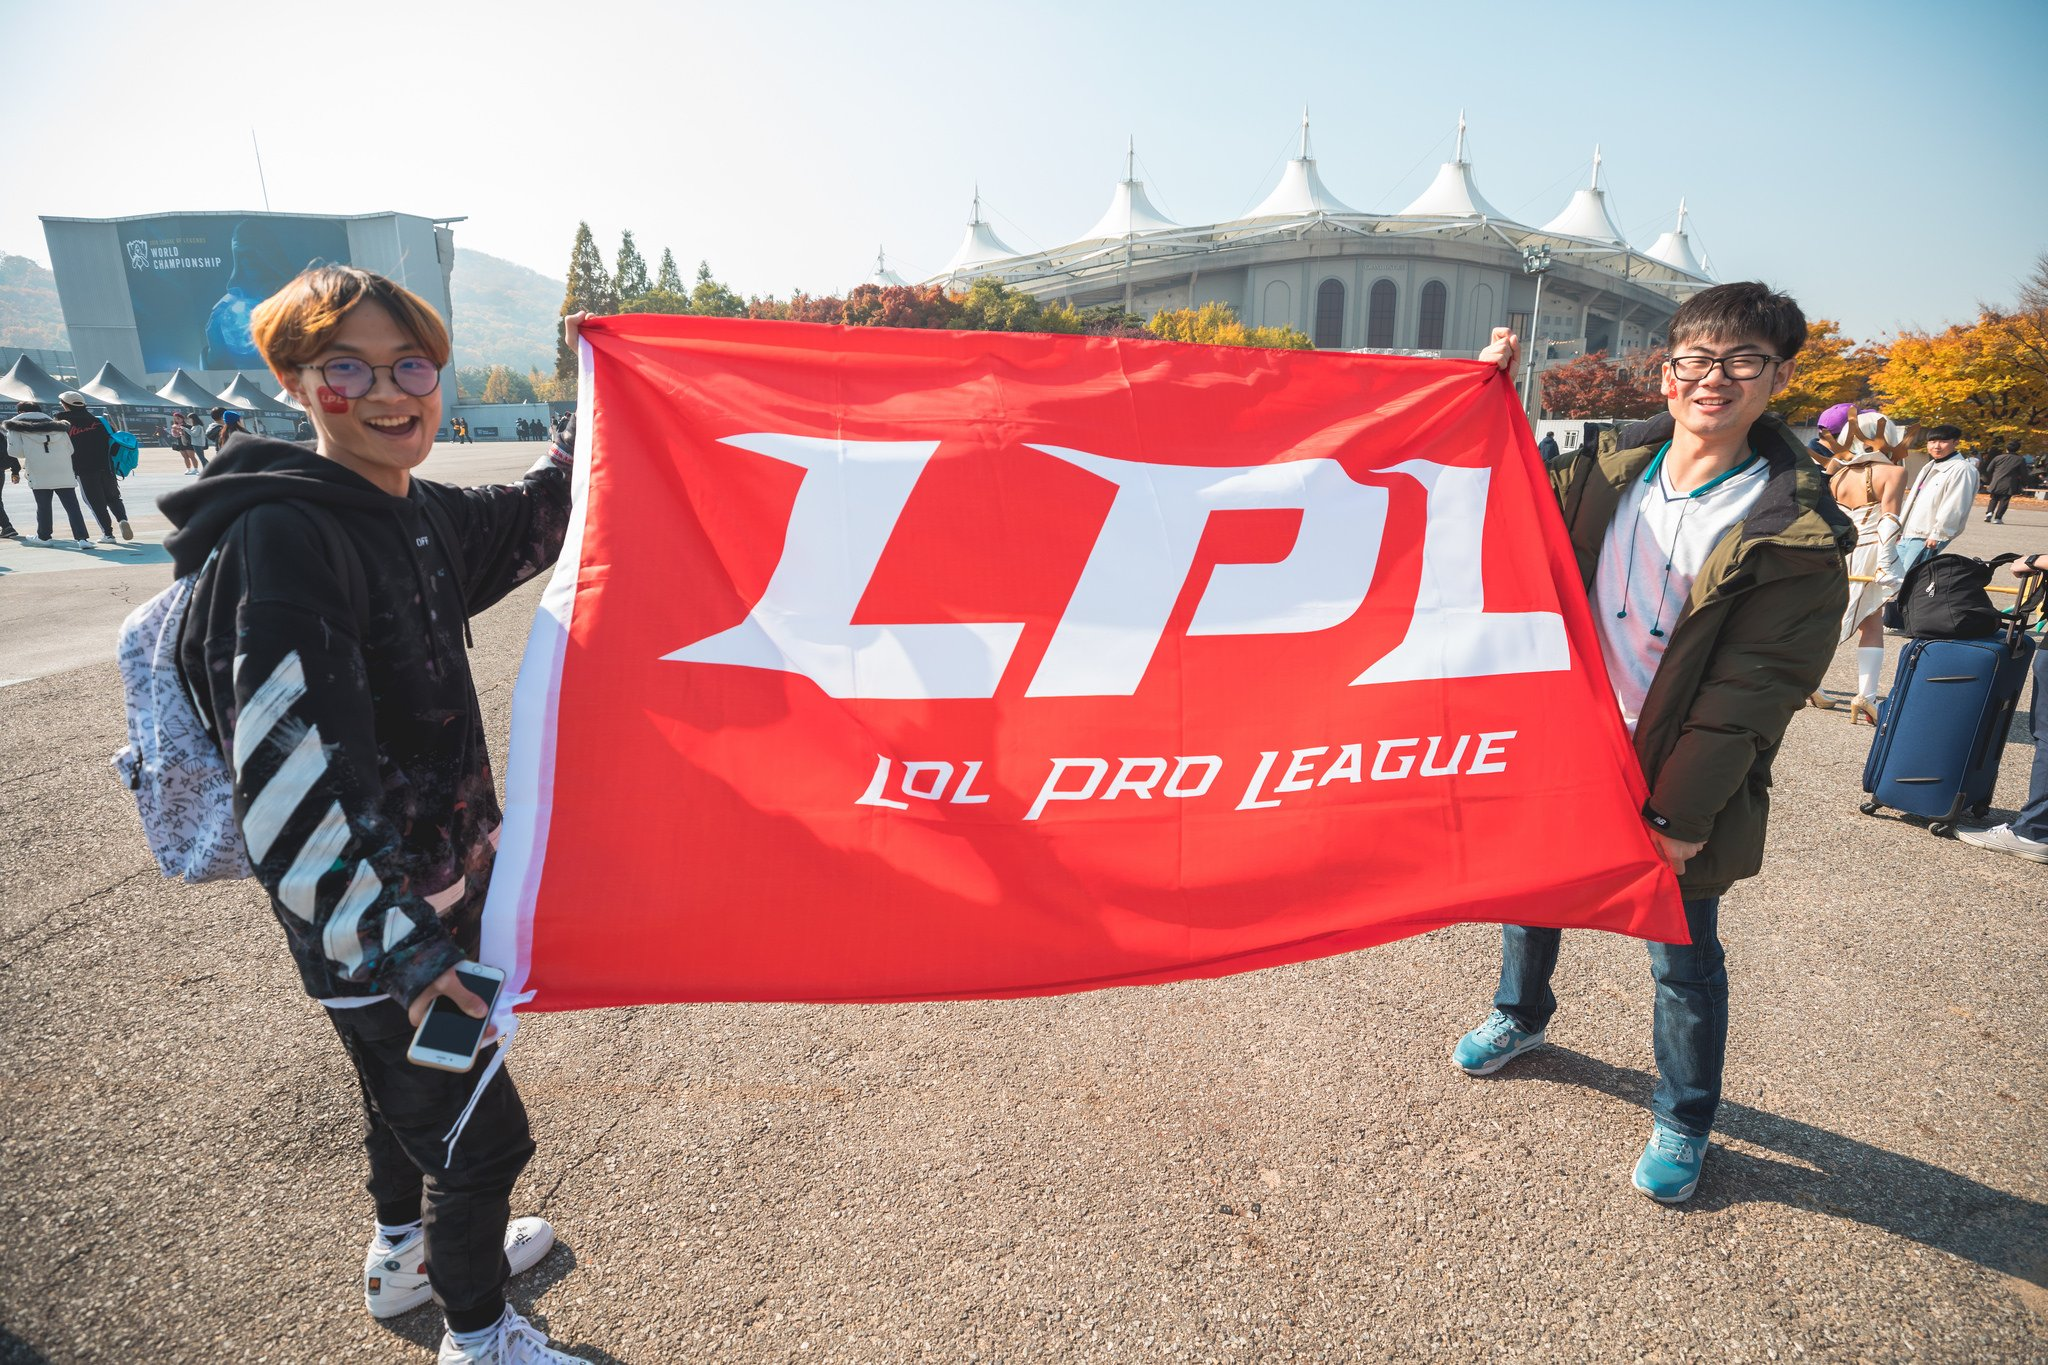 LPL – JD Gaming Extended Jungler Kanavi And ADC LokeN's Contracts For Upcoming Year In League Of Legends